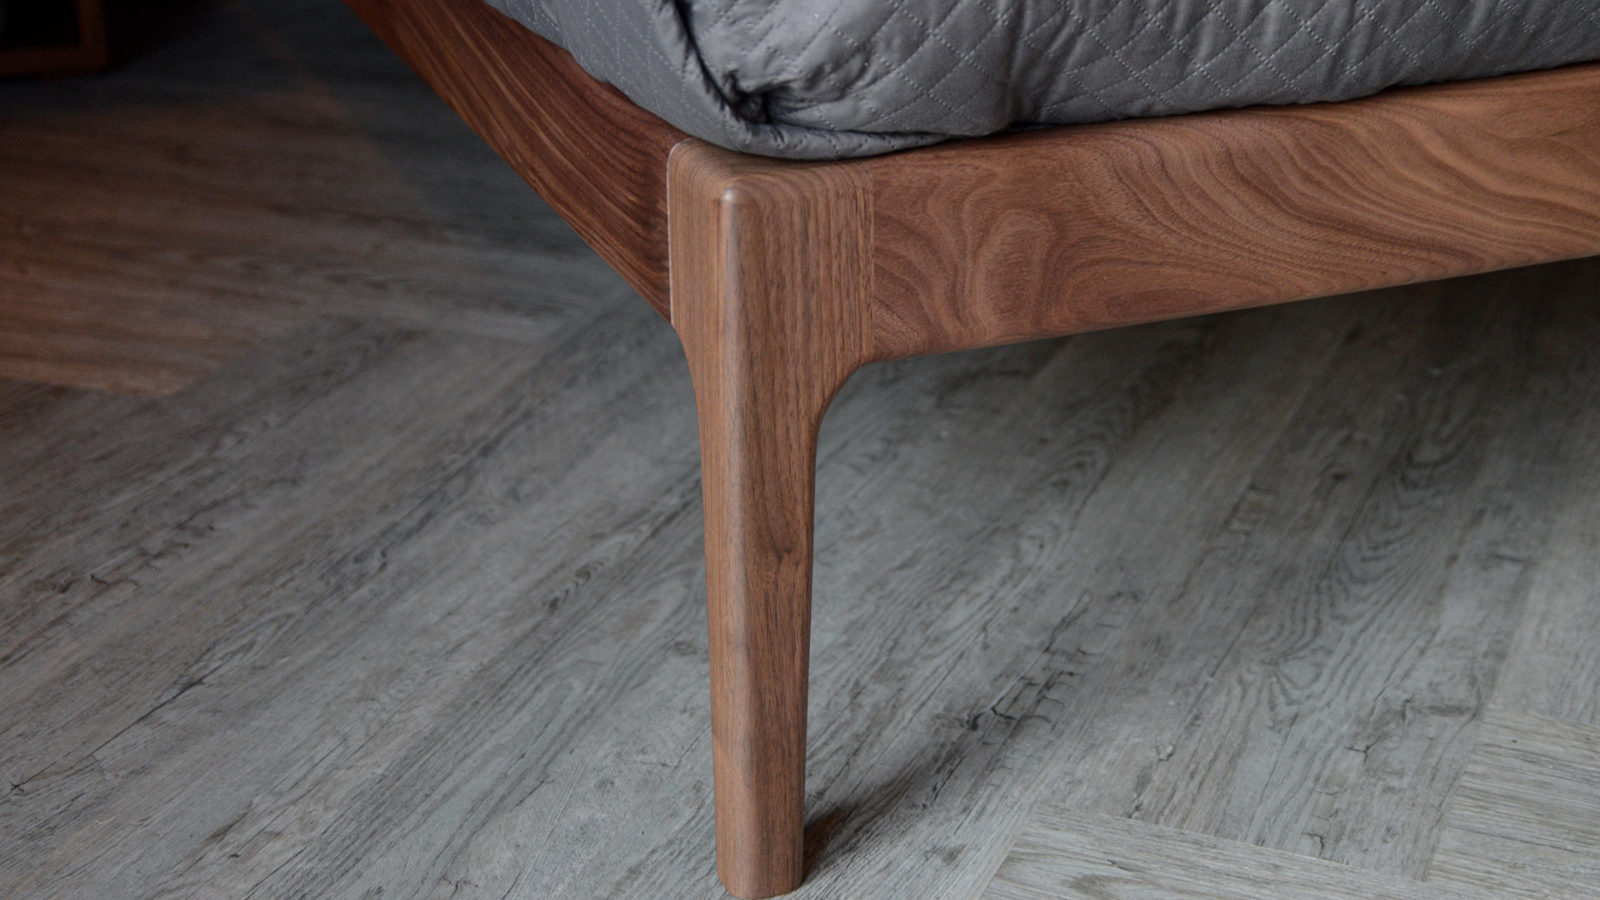 A closer view of the tapered leg of our solid walnut Hoxton bed